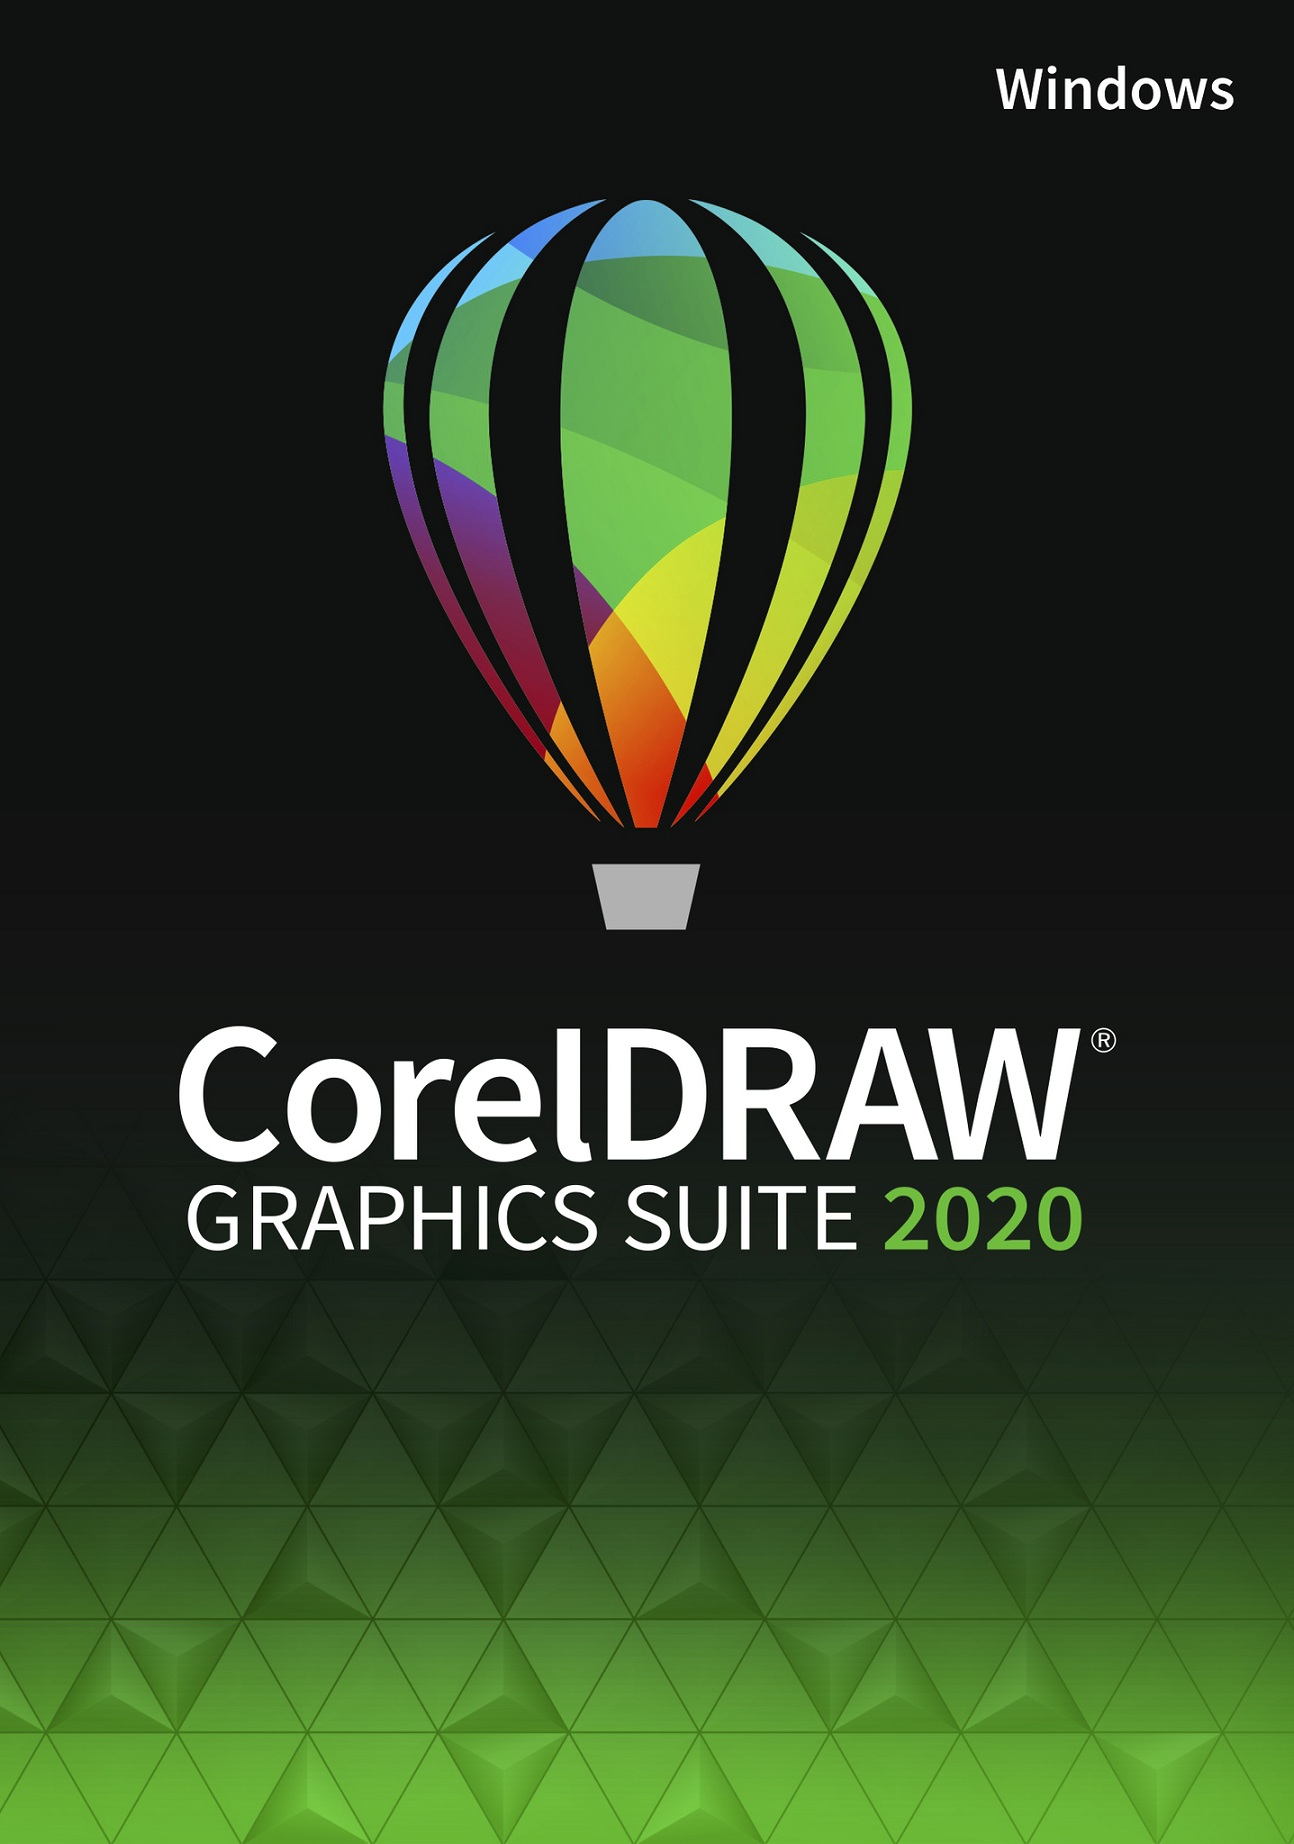 CorelDRAW Graphics Suite 2020 Education License (Windows) (5-50)